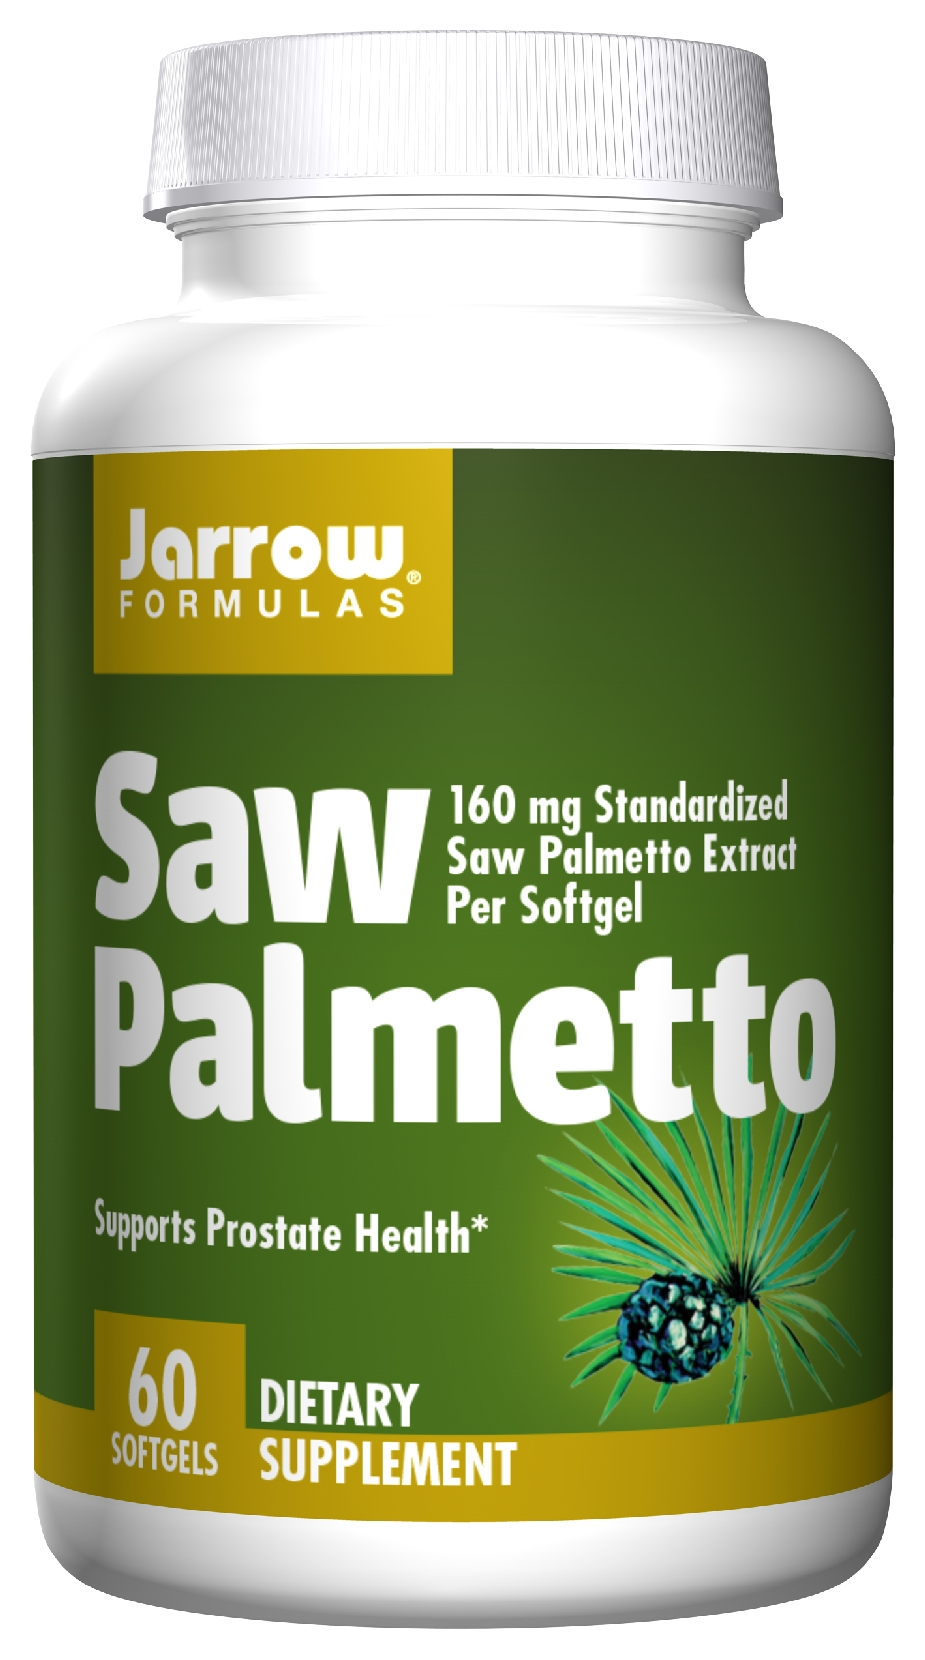 Saw Palmetto 60 sgels by Jarrow Formulas